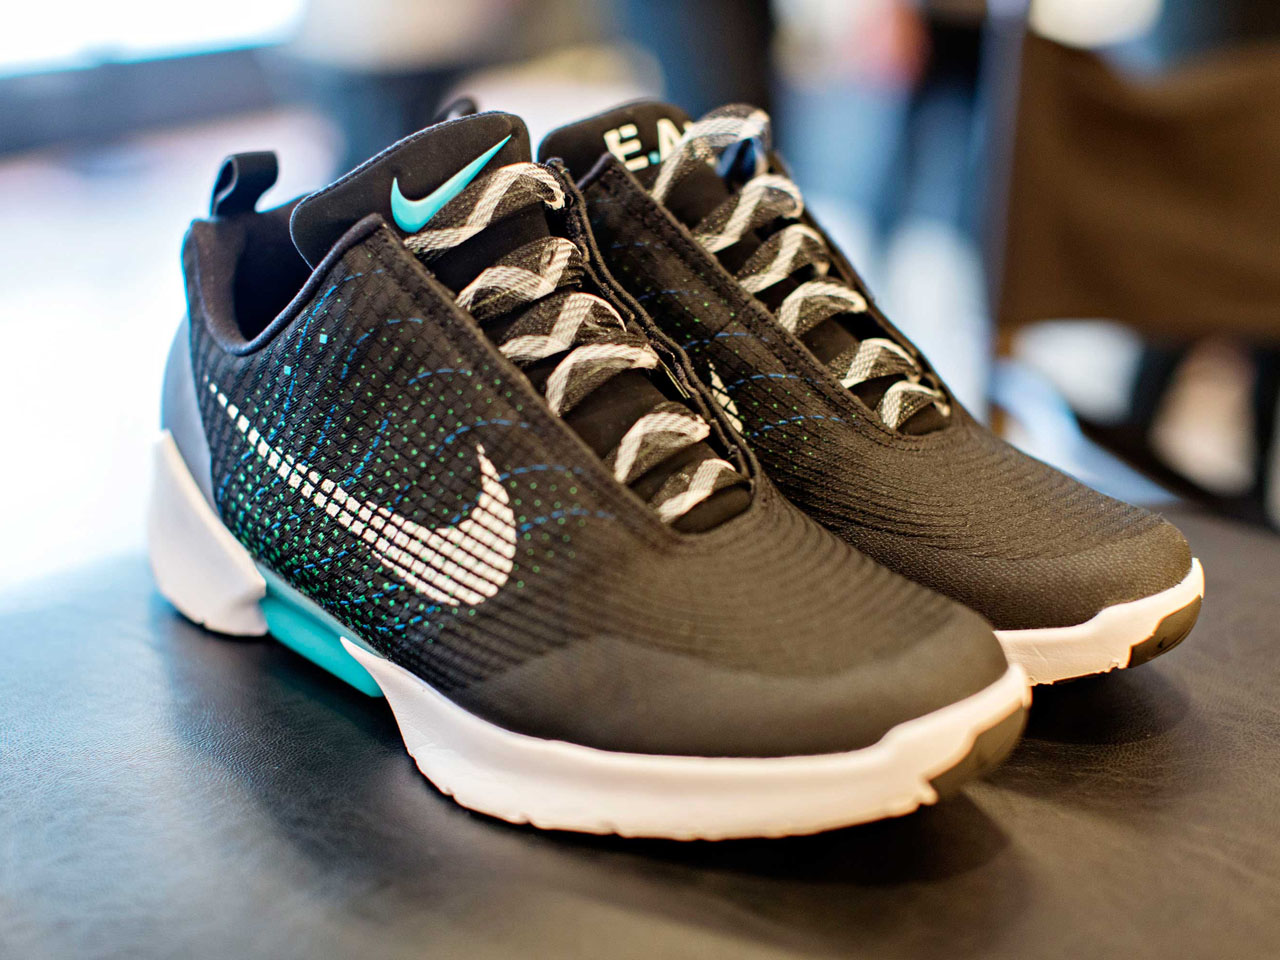 Nike HyperAdapt 1.0 review: What it's like to wear self-lacing 'Back to the  Future' shoe of your dreams